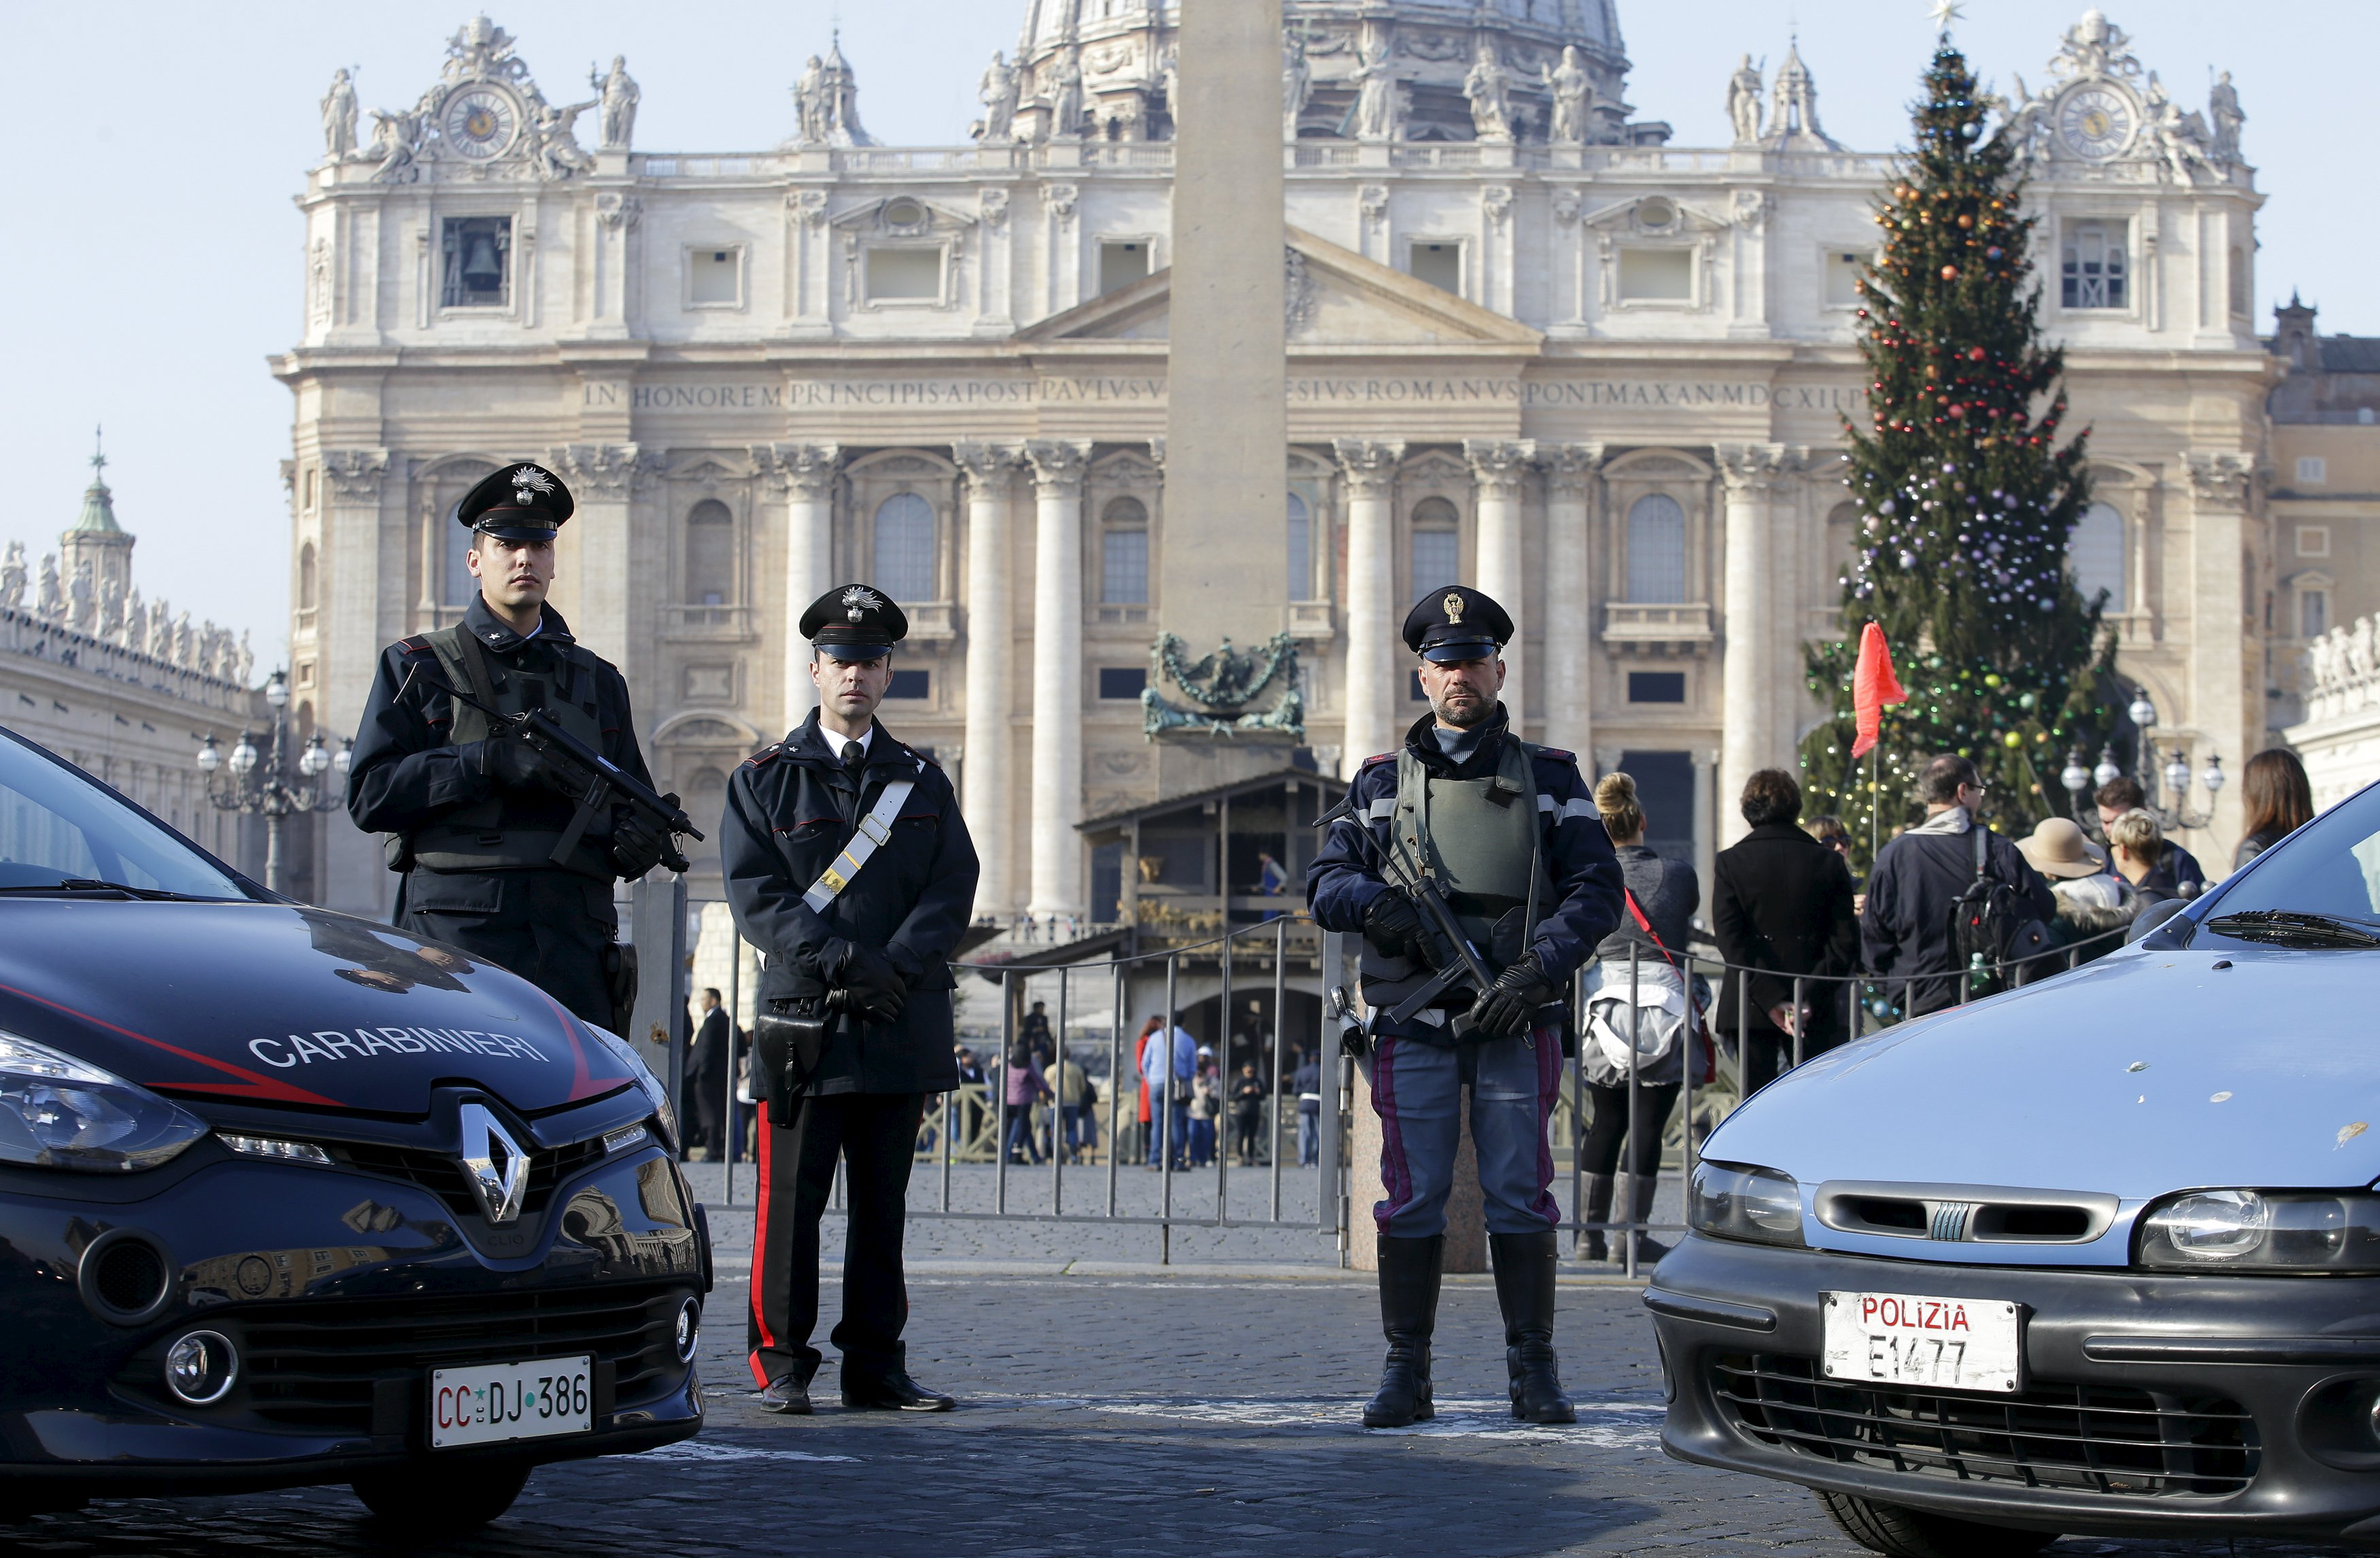 A policeman (R) and Carabinieri patrol in front of the Vatican in Rome, Italy, December 4, 2015. Rome is bracing for the arrival of millions of pilgrims for the Roman Catholic Holy Year which officials had hoped could revitalise the scandal-plagued city, but which threatens to be more of a headache than a help. During the 12-month Jubilee, Catholics coming to the Eternal City can gain indulgences, which, they believe, might speed their passage to heaven. REUTERS/Max Rossi